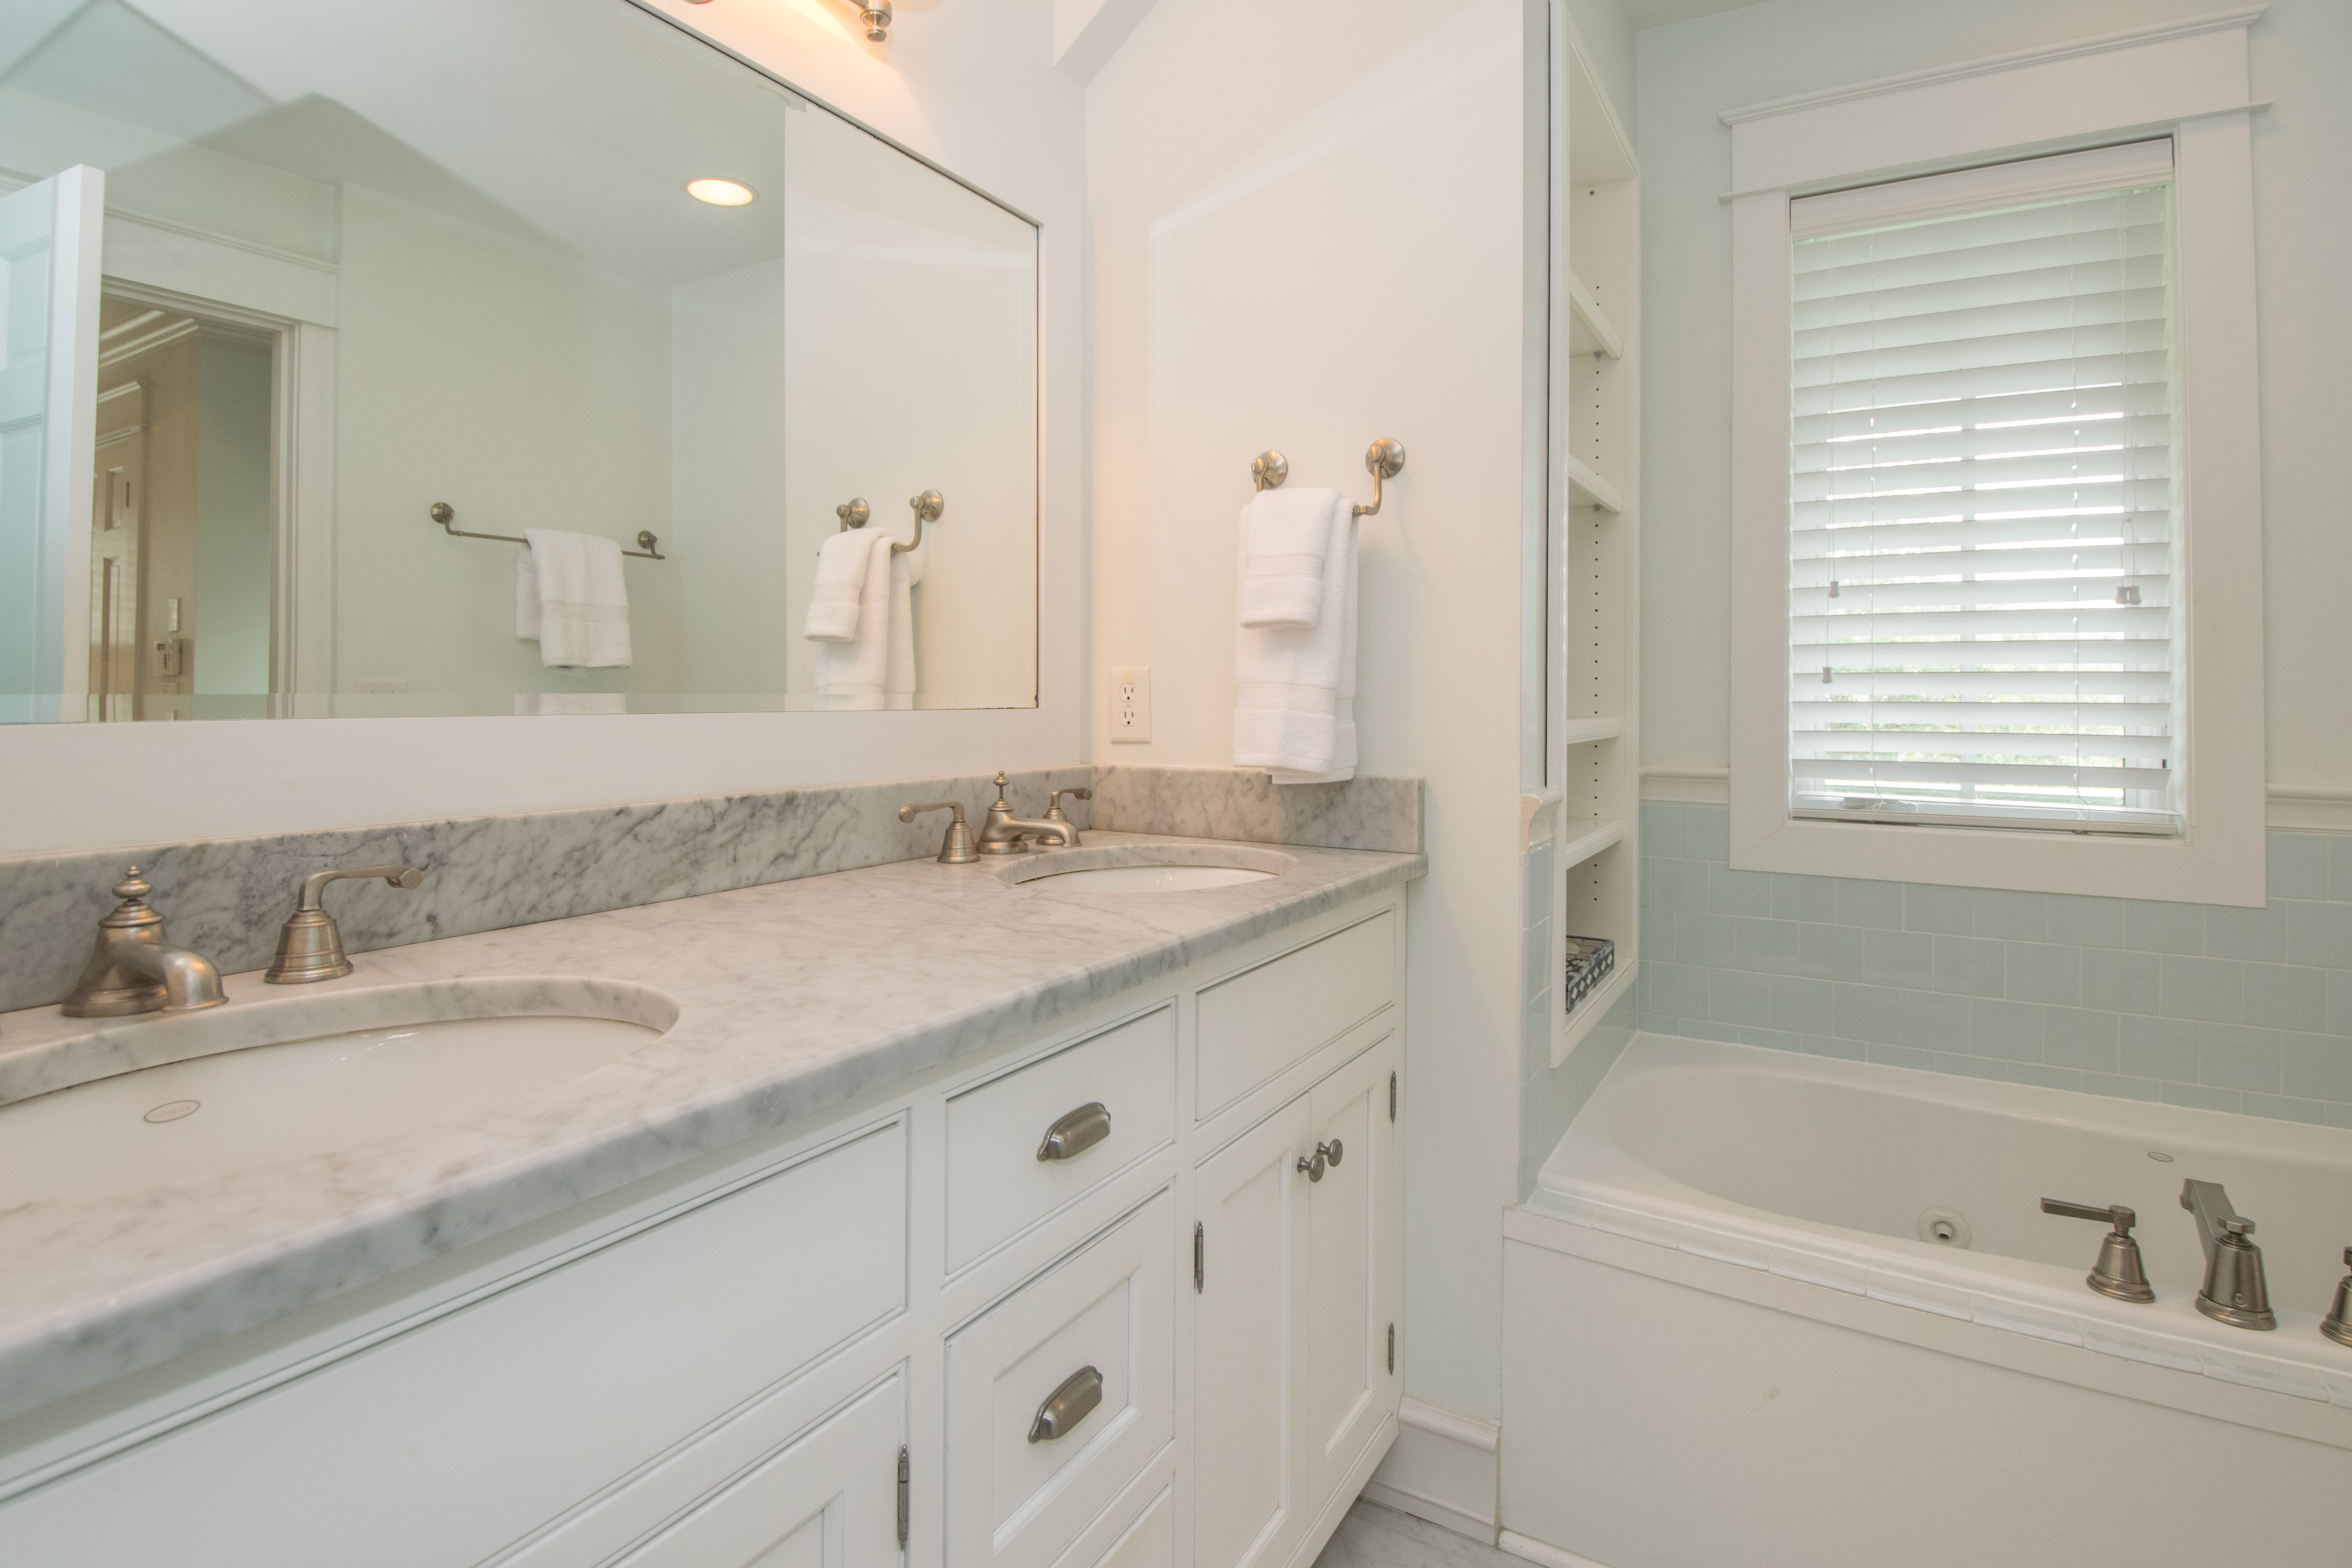 Master Bath with double sinks, soaker tub and walk-in shower